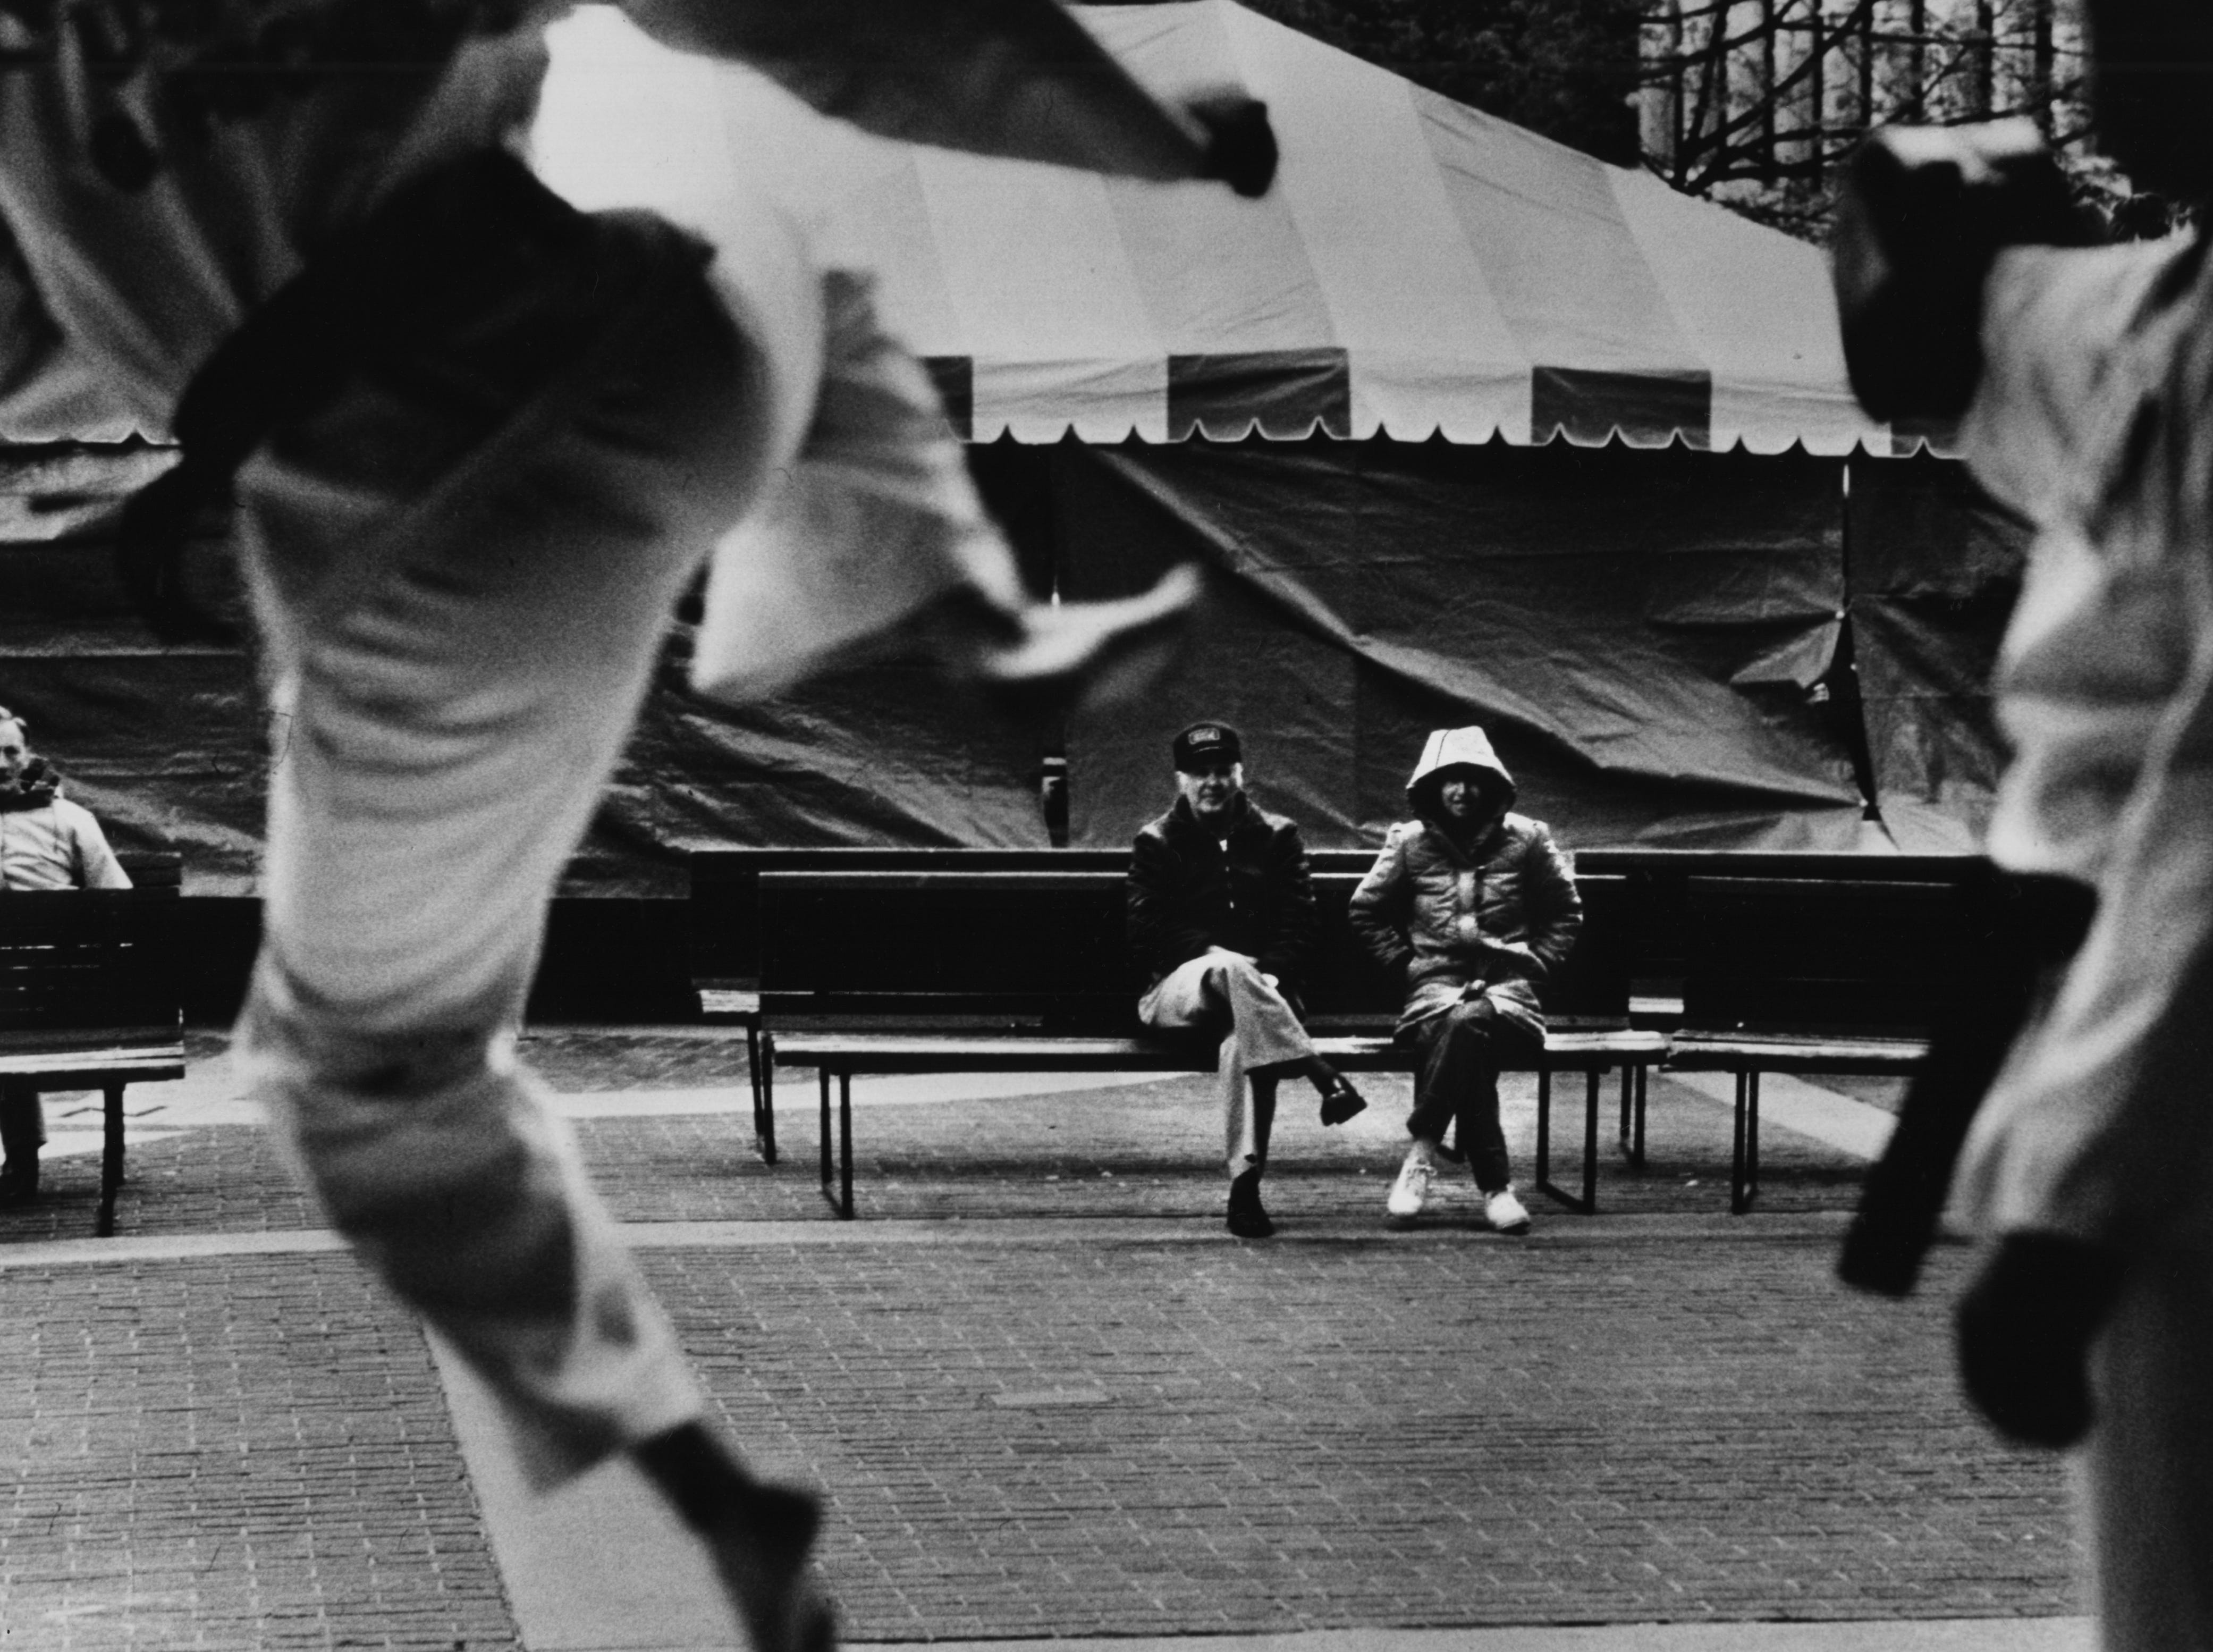 Dewey Linkous and Delois Godsey watch a Taekwondo demonstration during the Dogwood Arts Festival April 8, 1988 at Market Square.